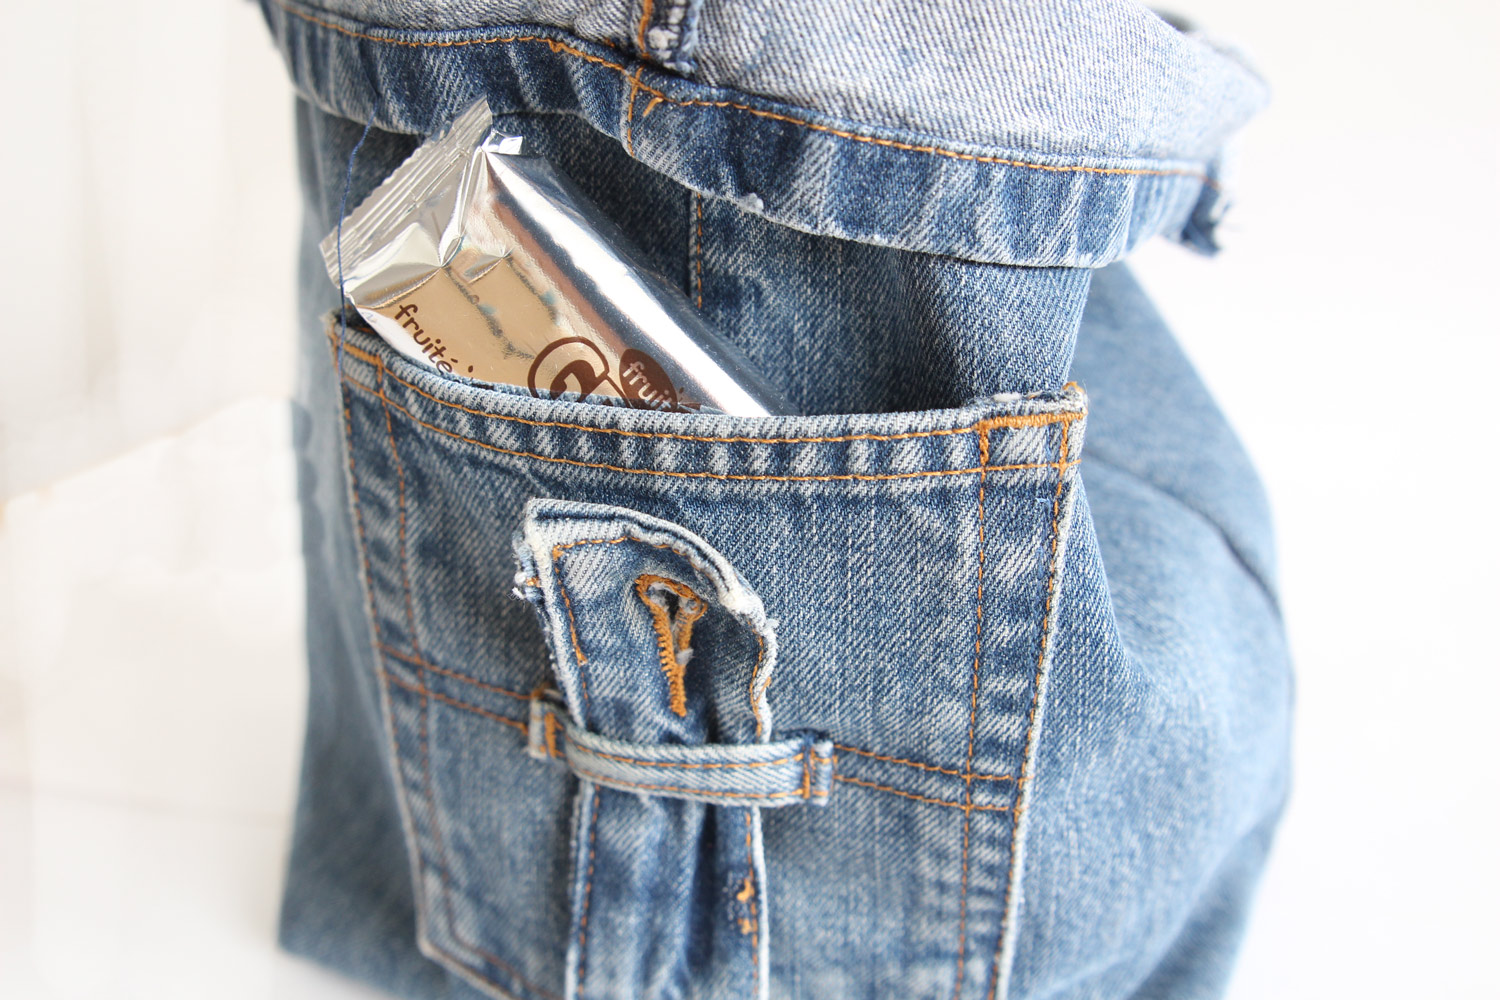 Lunchbag with old jeans - upcycling - Made by Emy